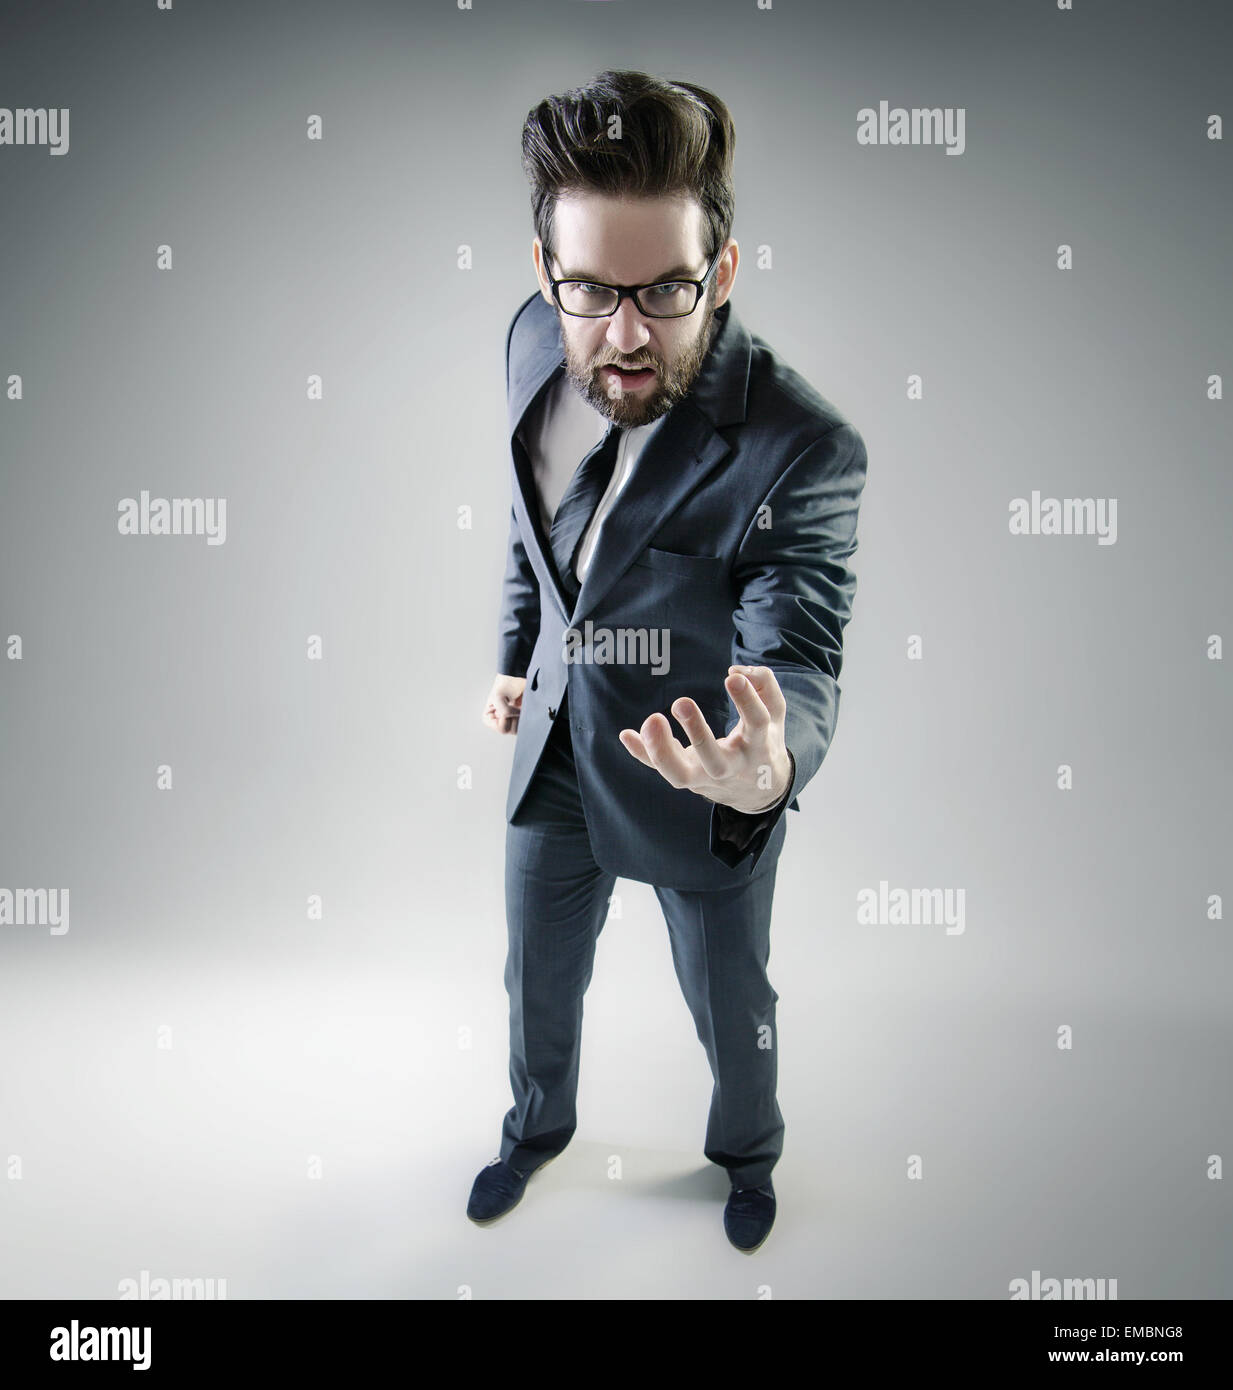 Angry businessman posing in elegant suit - Stock Image